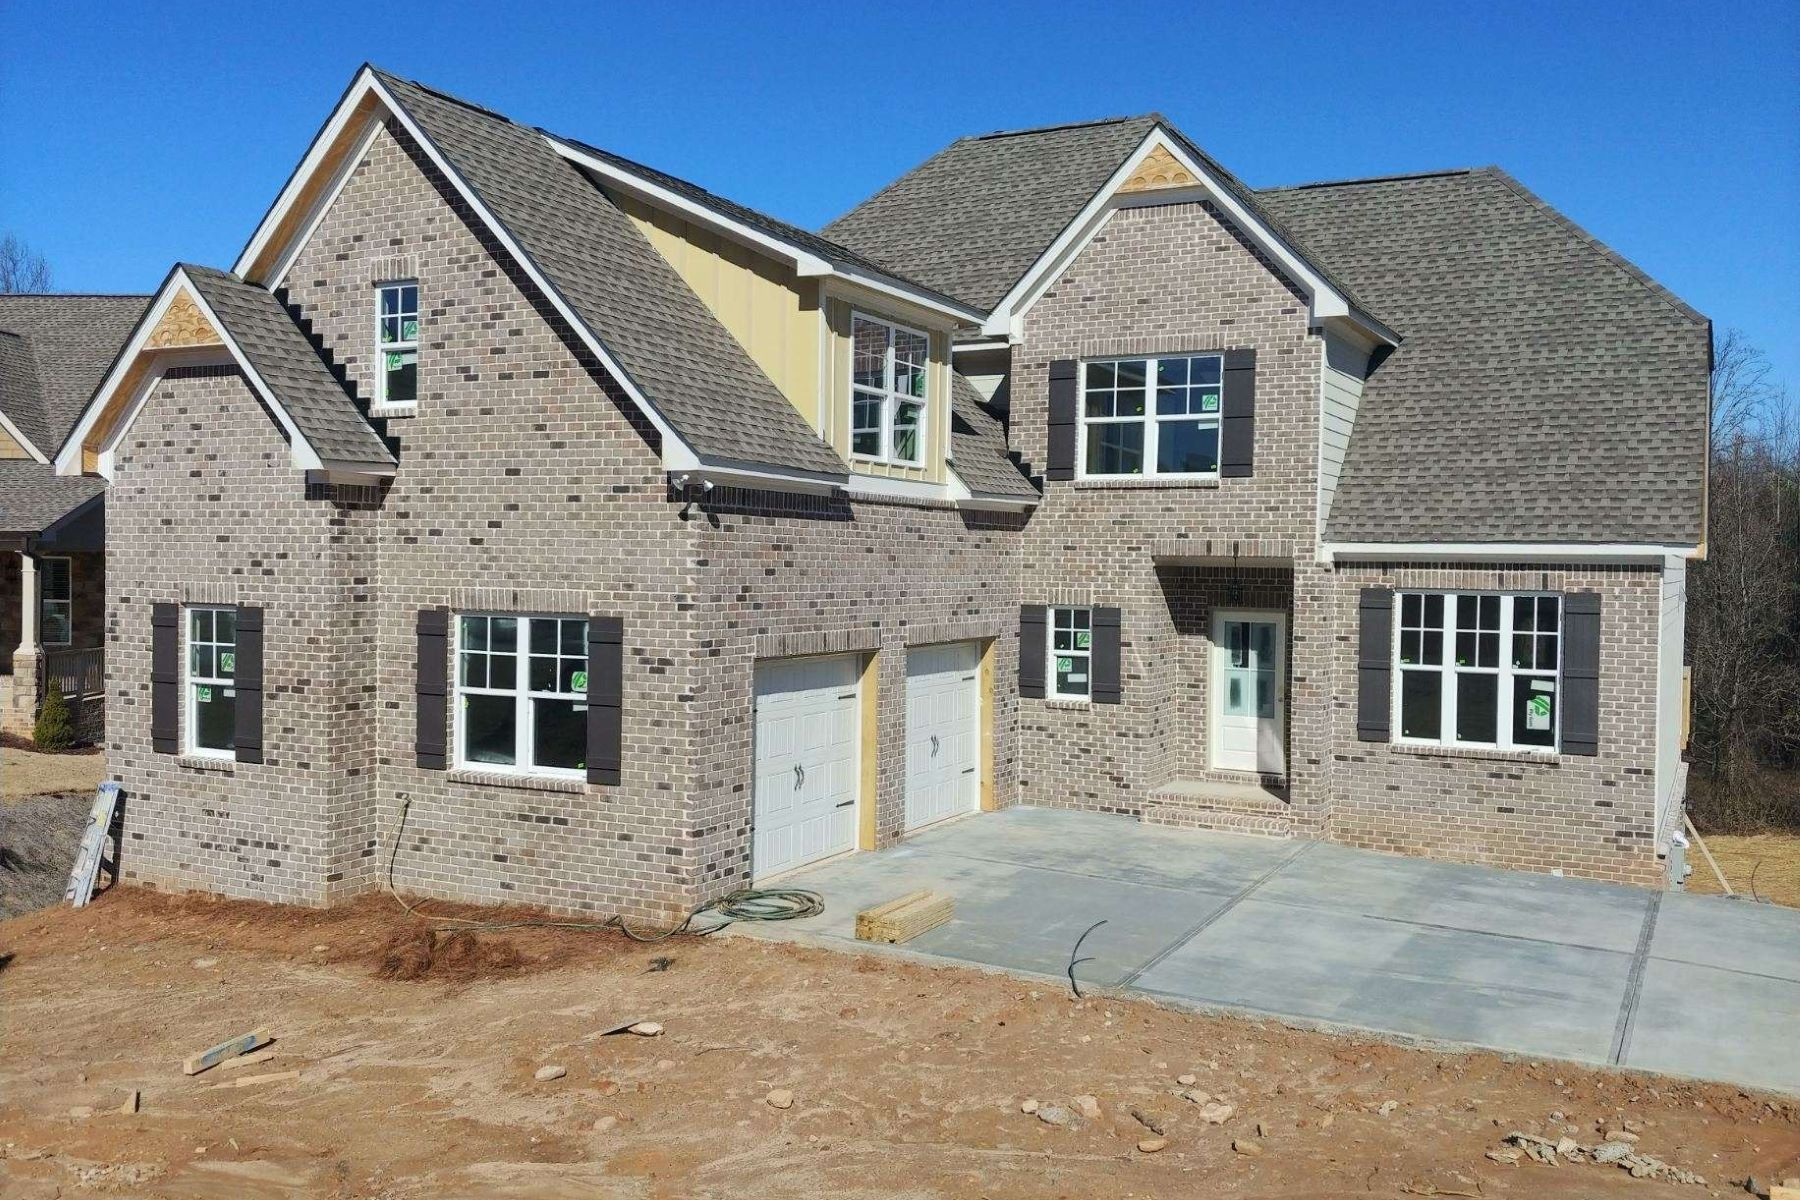 Single Family Homes for Active at New Construction, Four Bedrooms 9160 Hannahs Crossing Drive Gainesville, Georgia 30506 United States